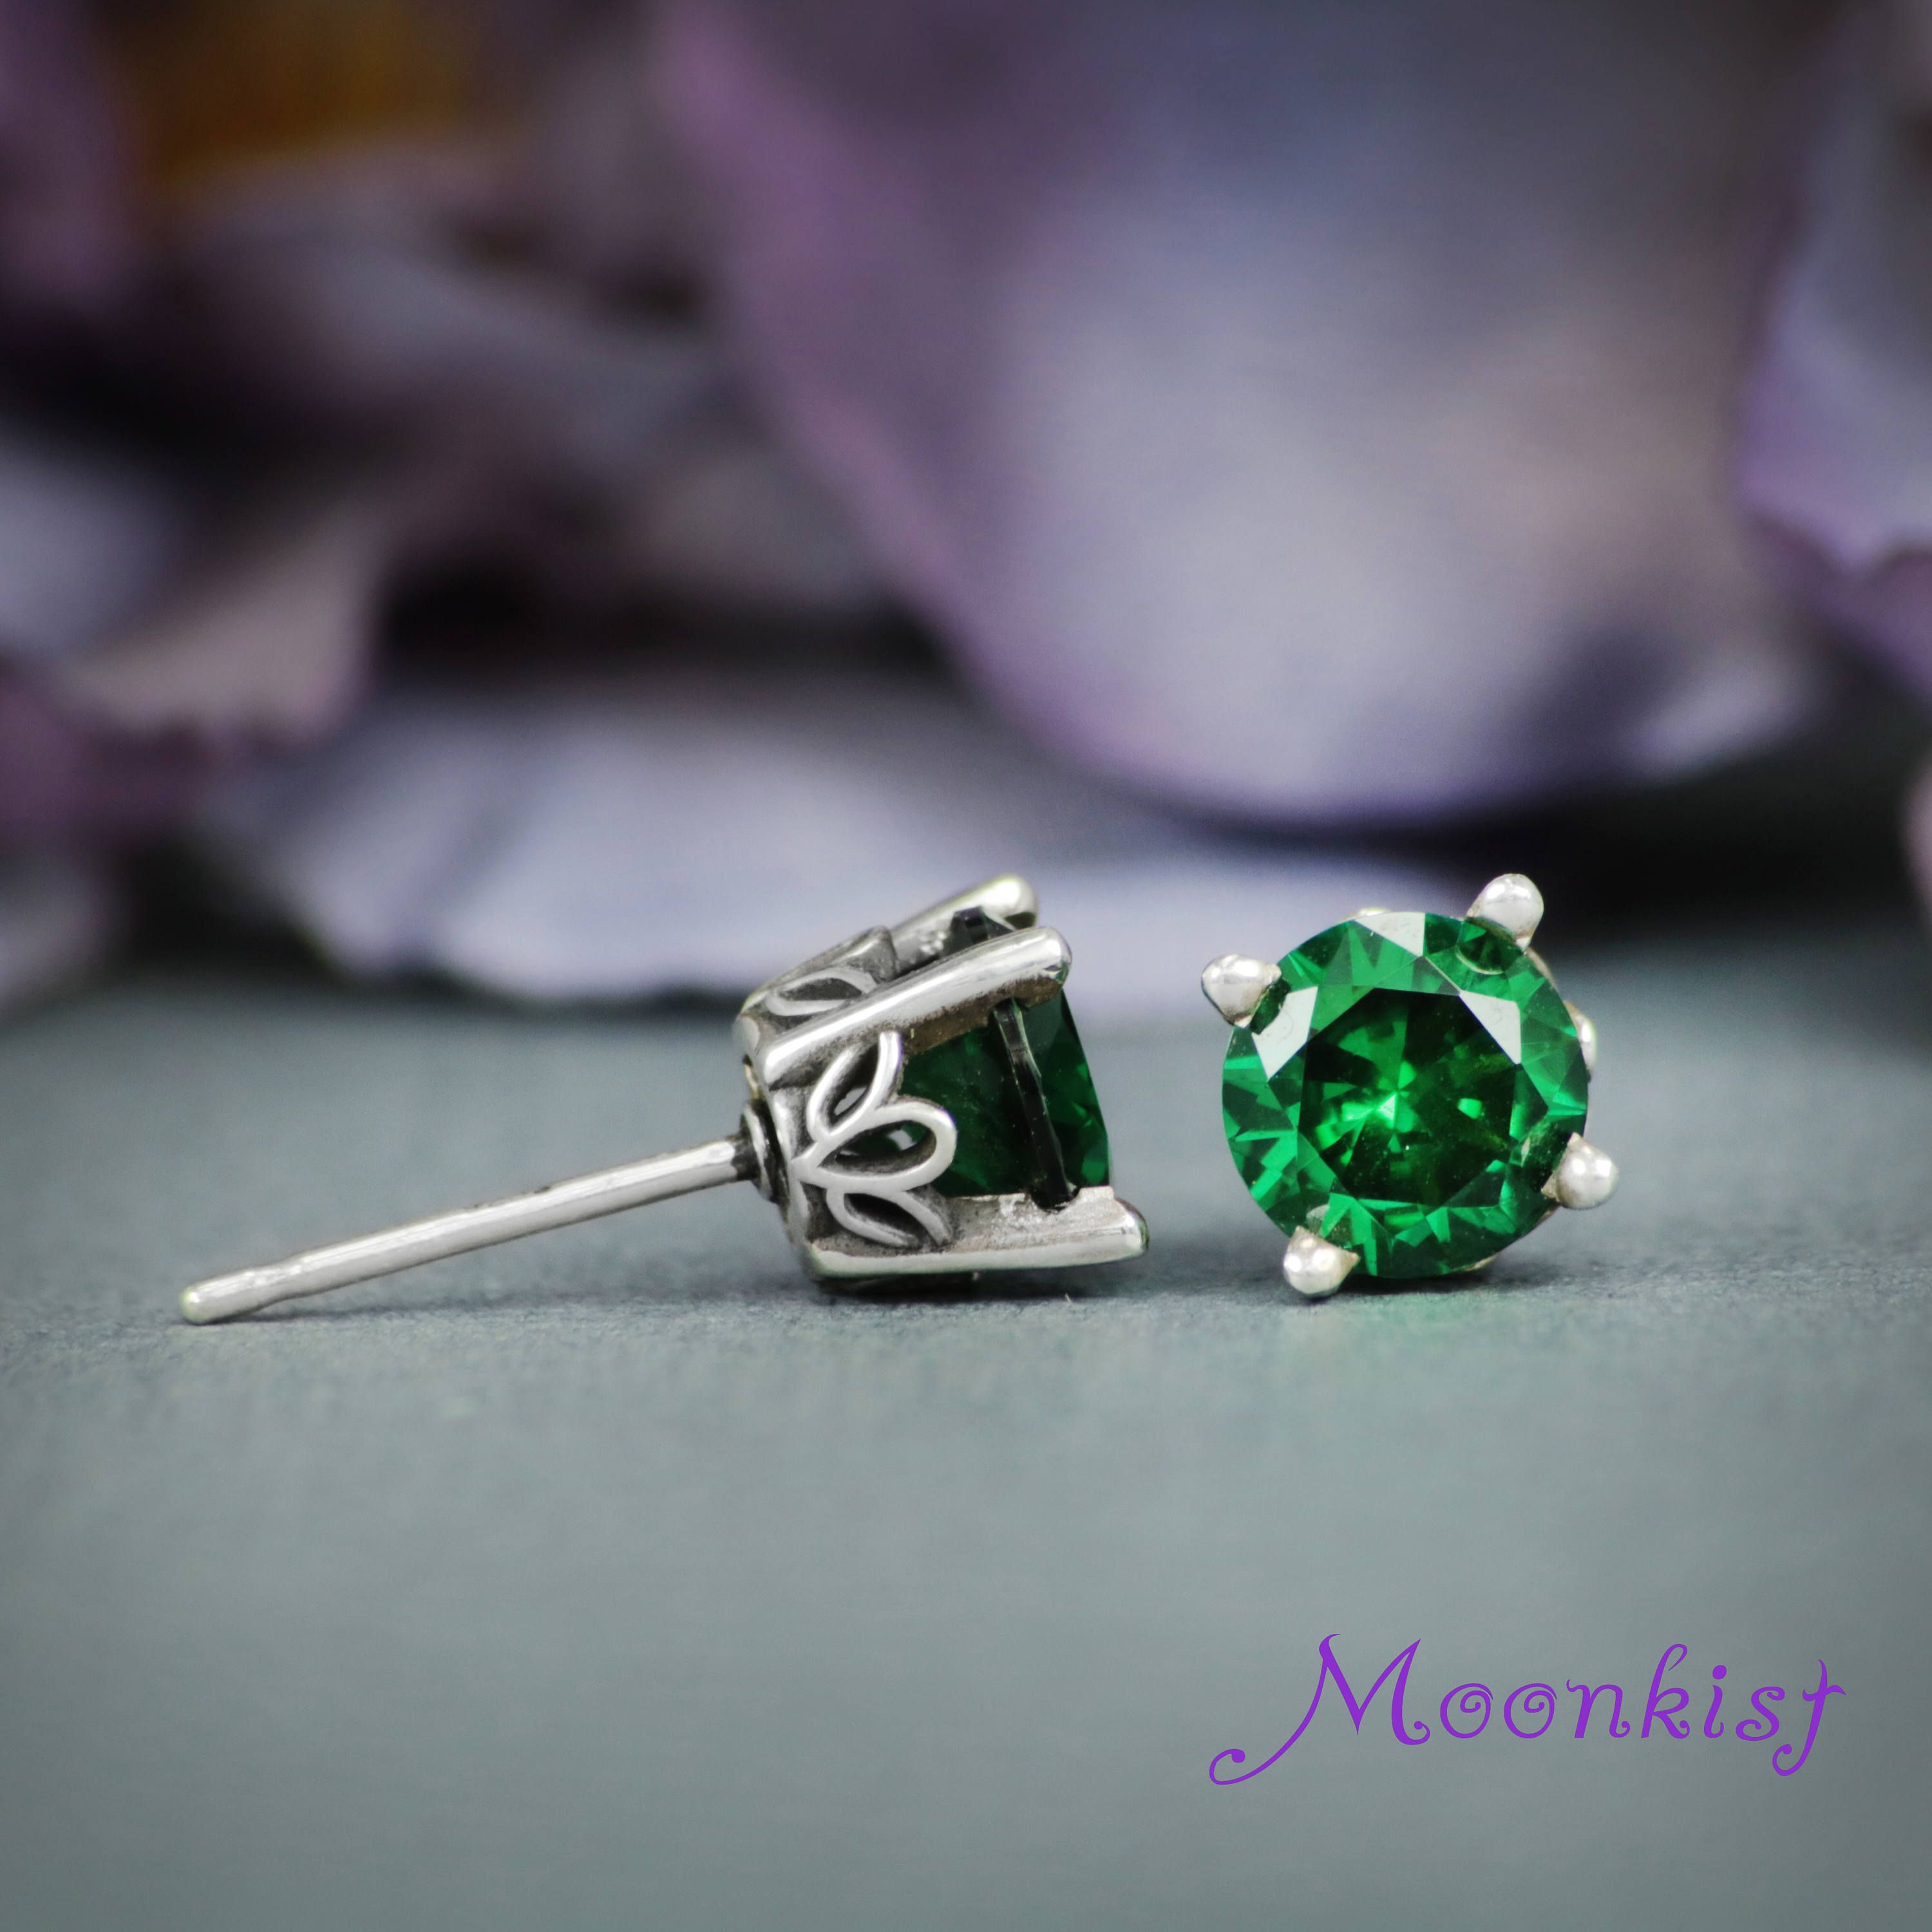 Featuring bright, sparkling laboratory-grown green spinel that ...